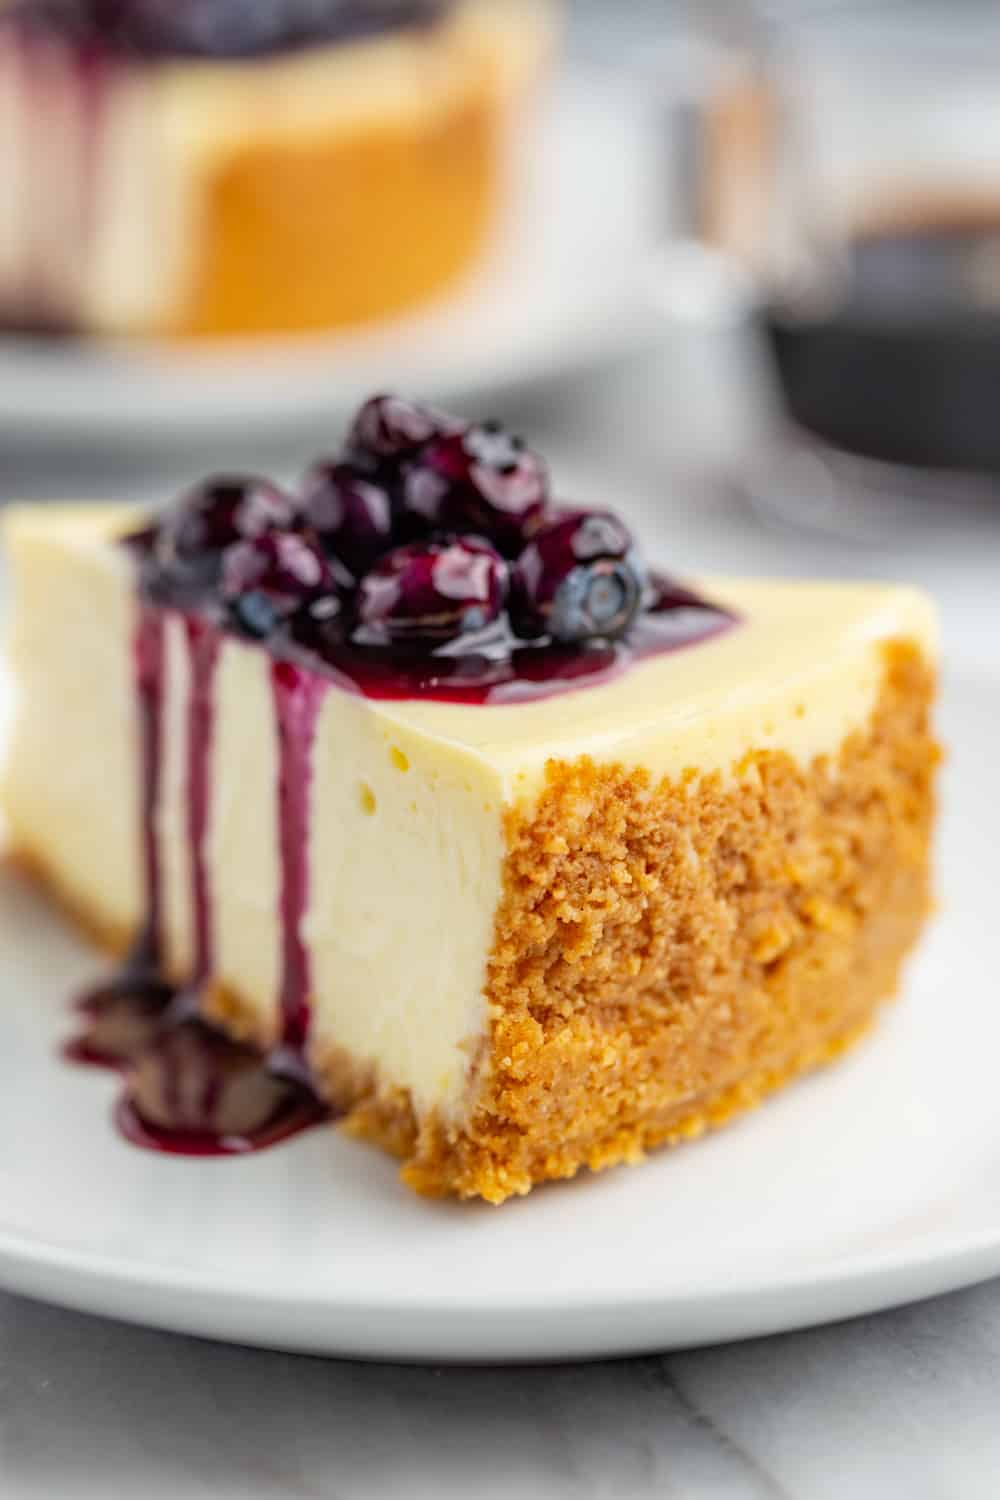 Slice of cheesecake with close up of the graham cracker crust